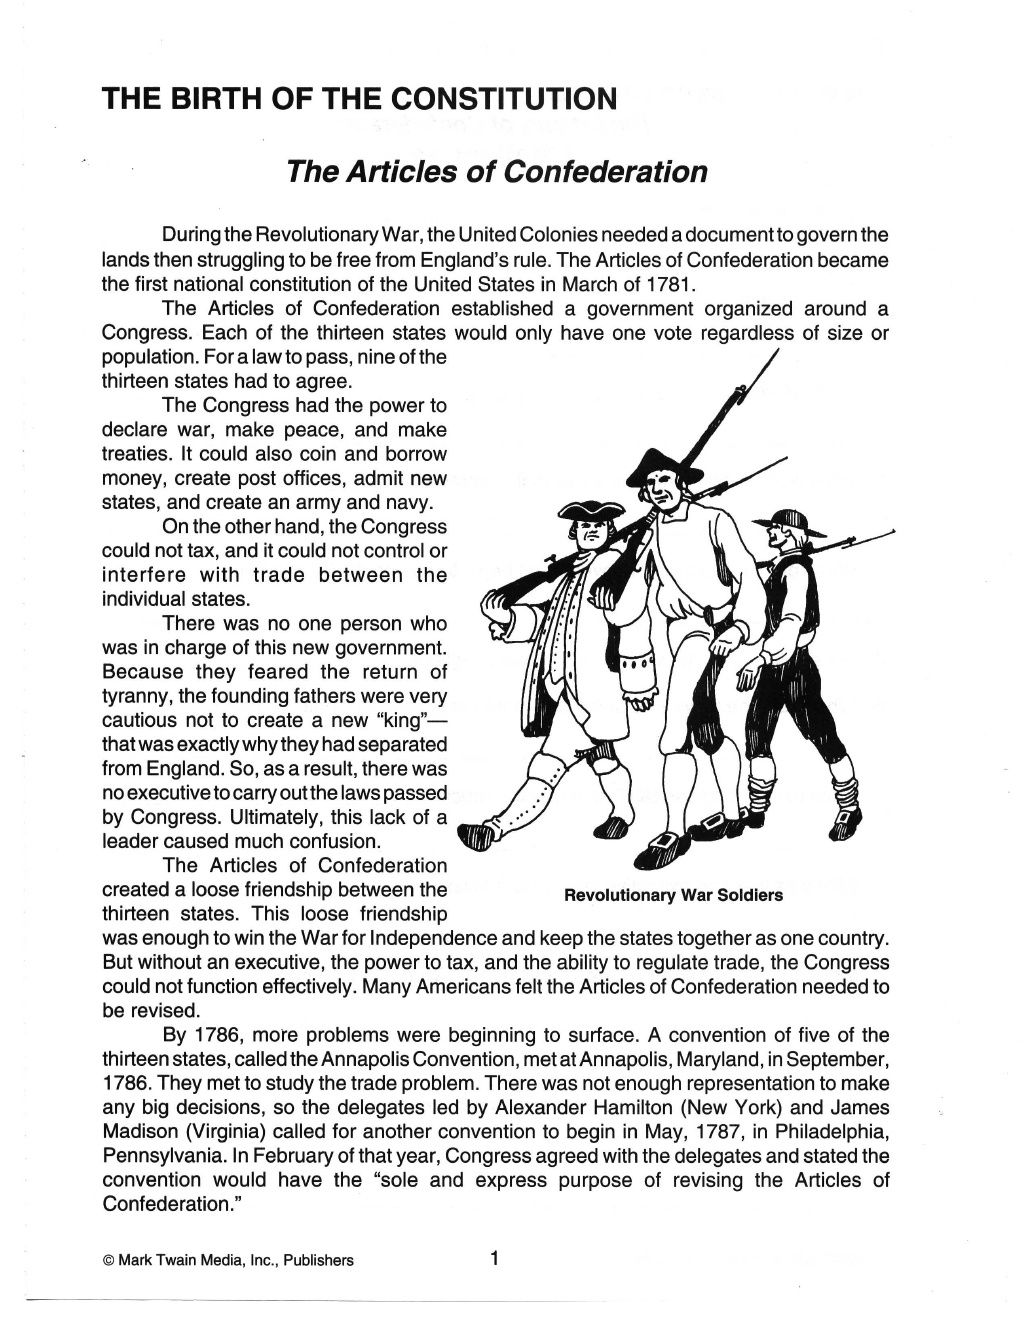 Constitution Worksheets By Heather Wanshon Via Slideshare